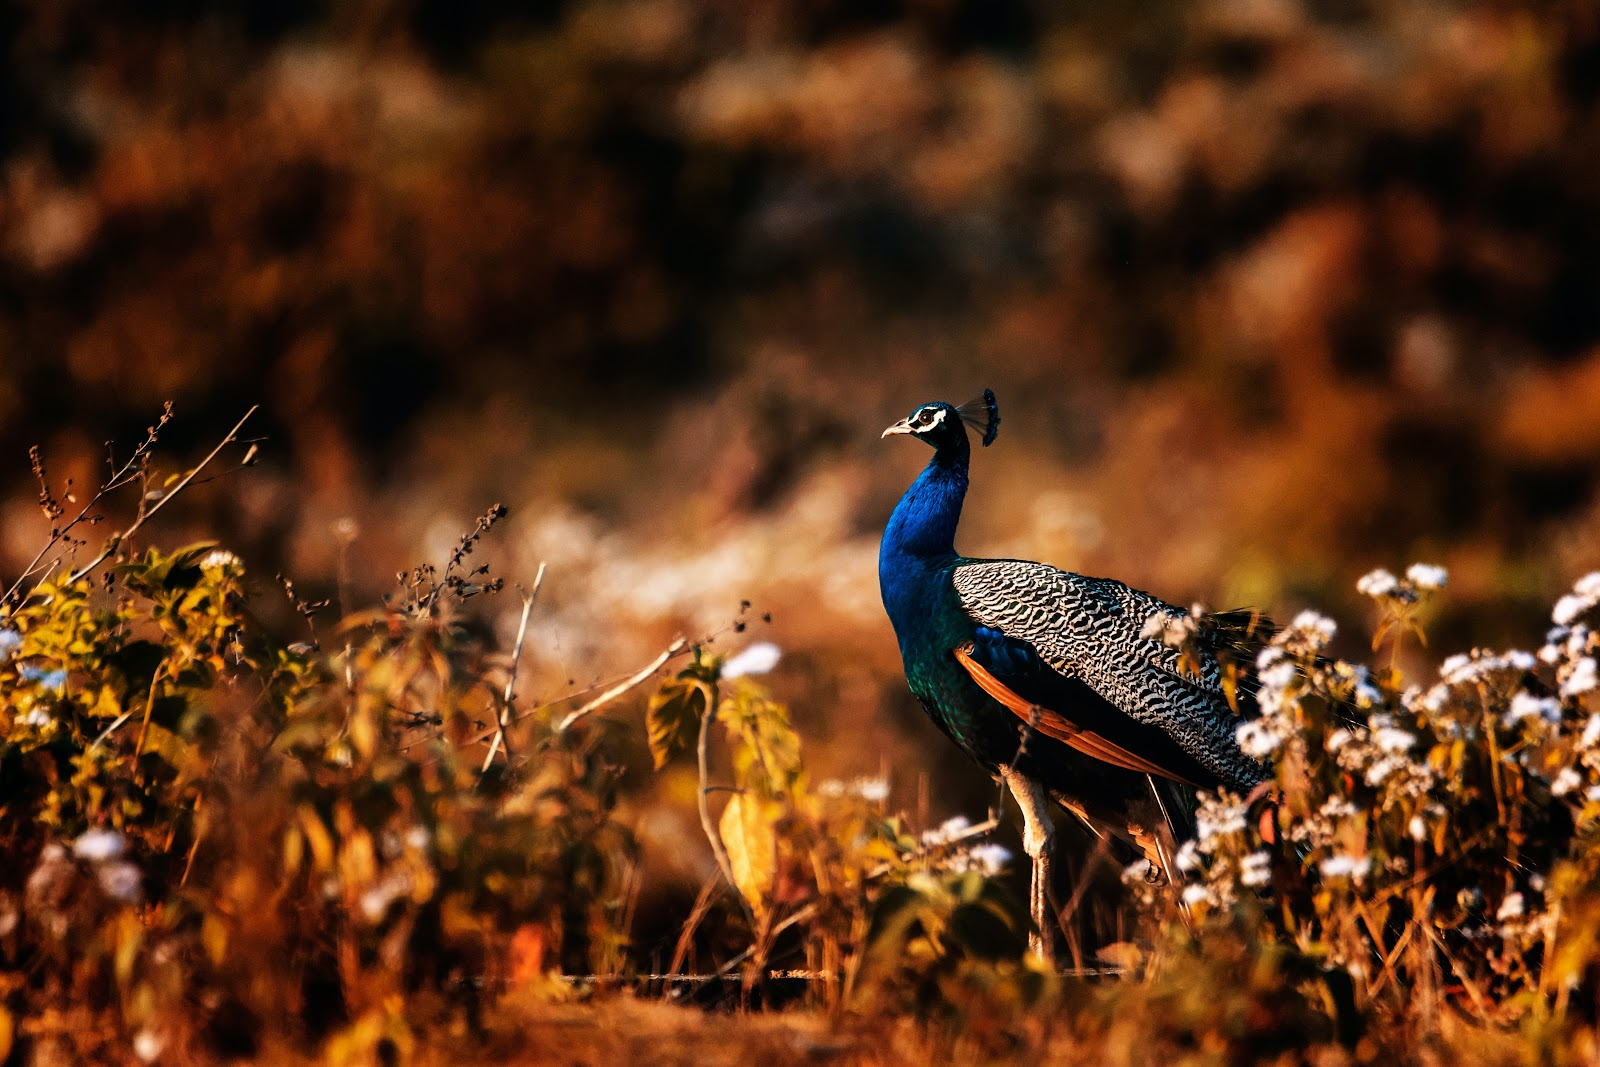 peacock-in-the-field-pictures